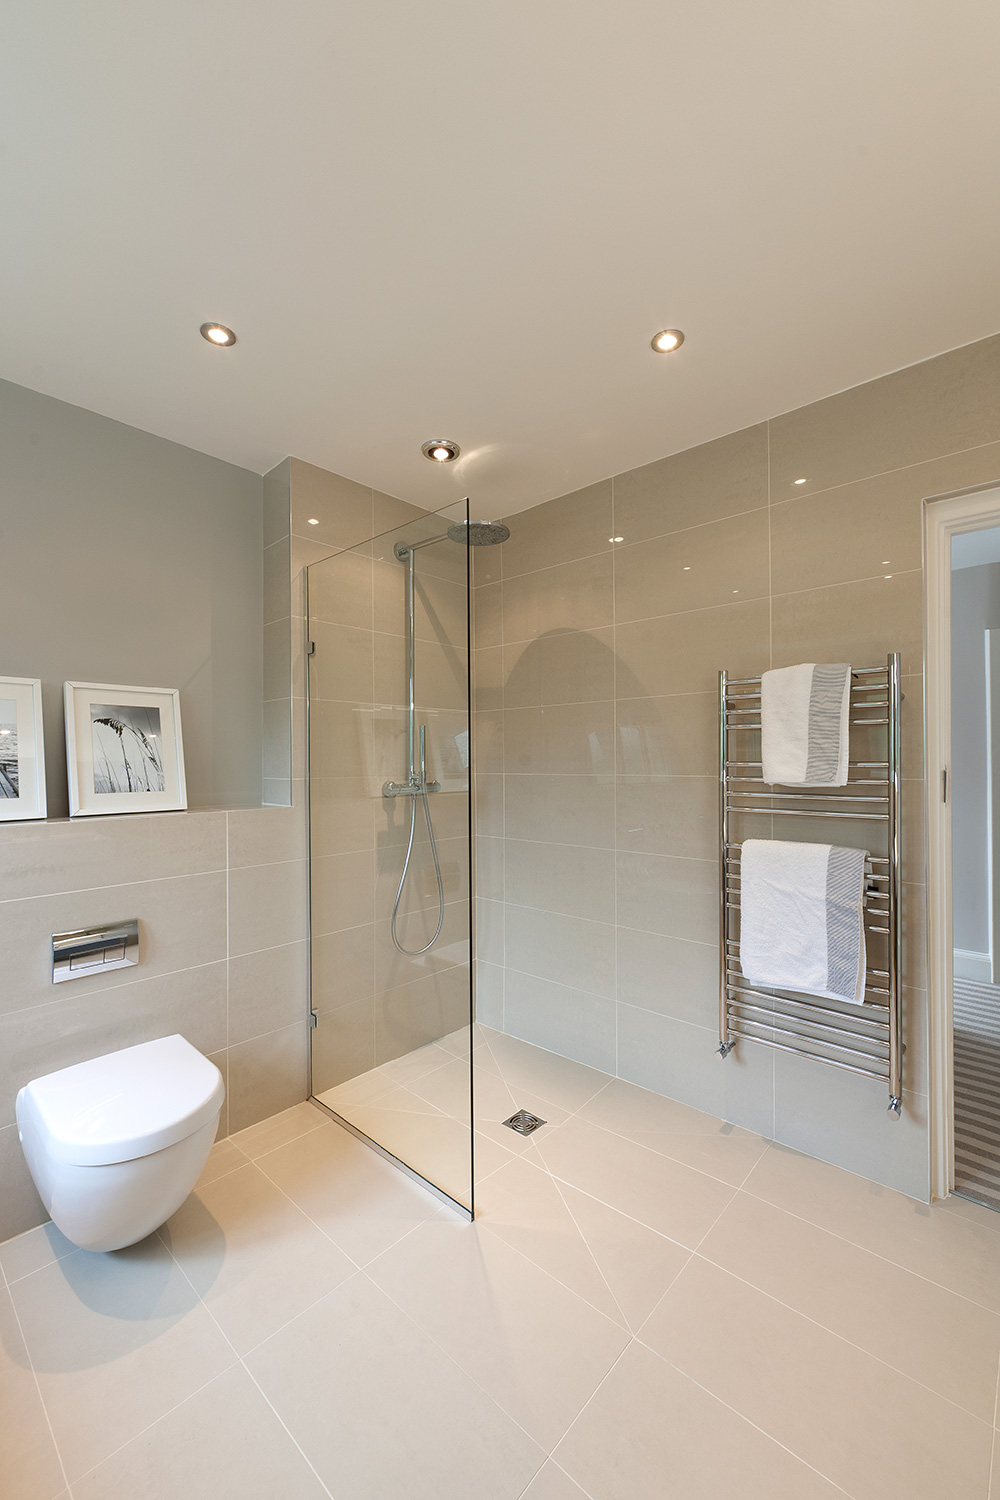 1-Nikki-Rees-wetroom-bathroom-interior-design-wimbledon-london-surrey-2